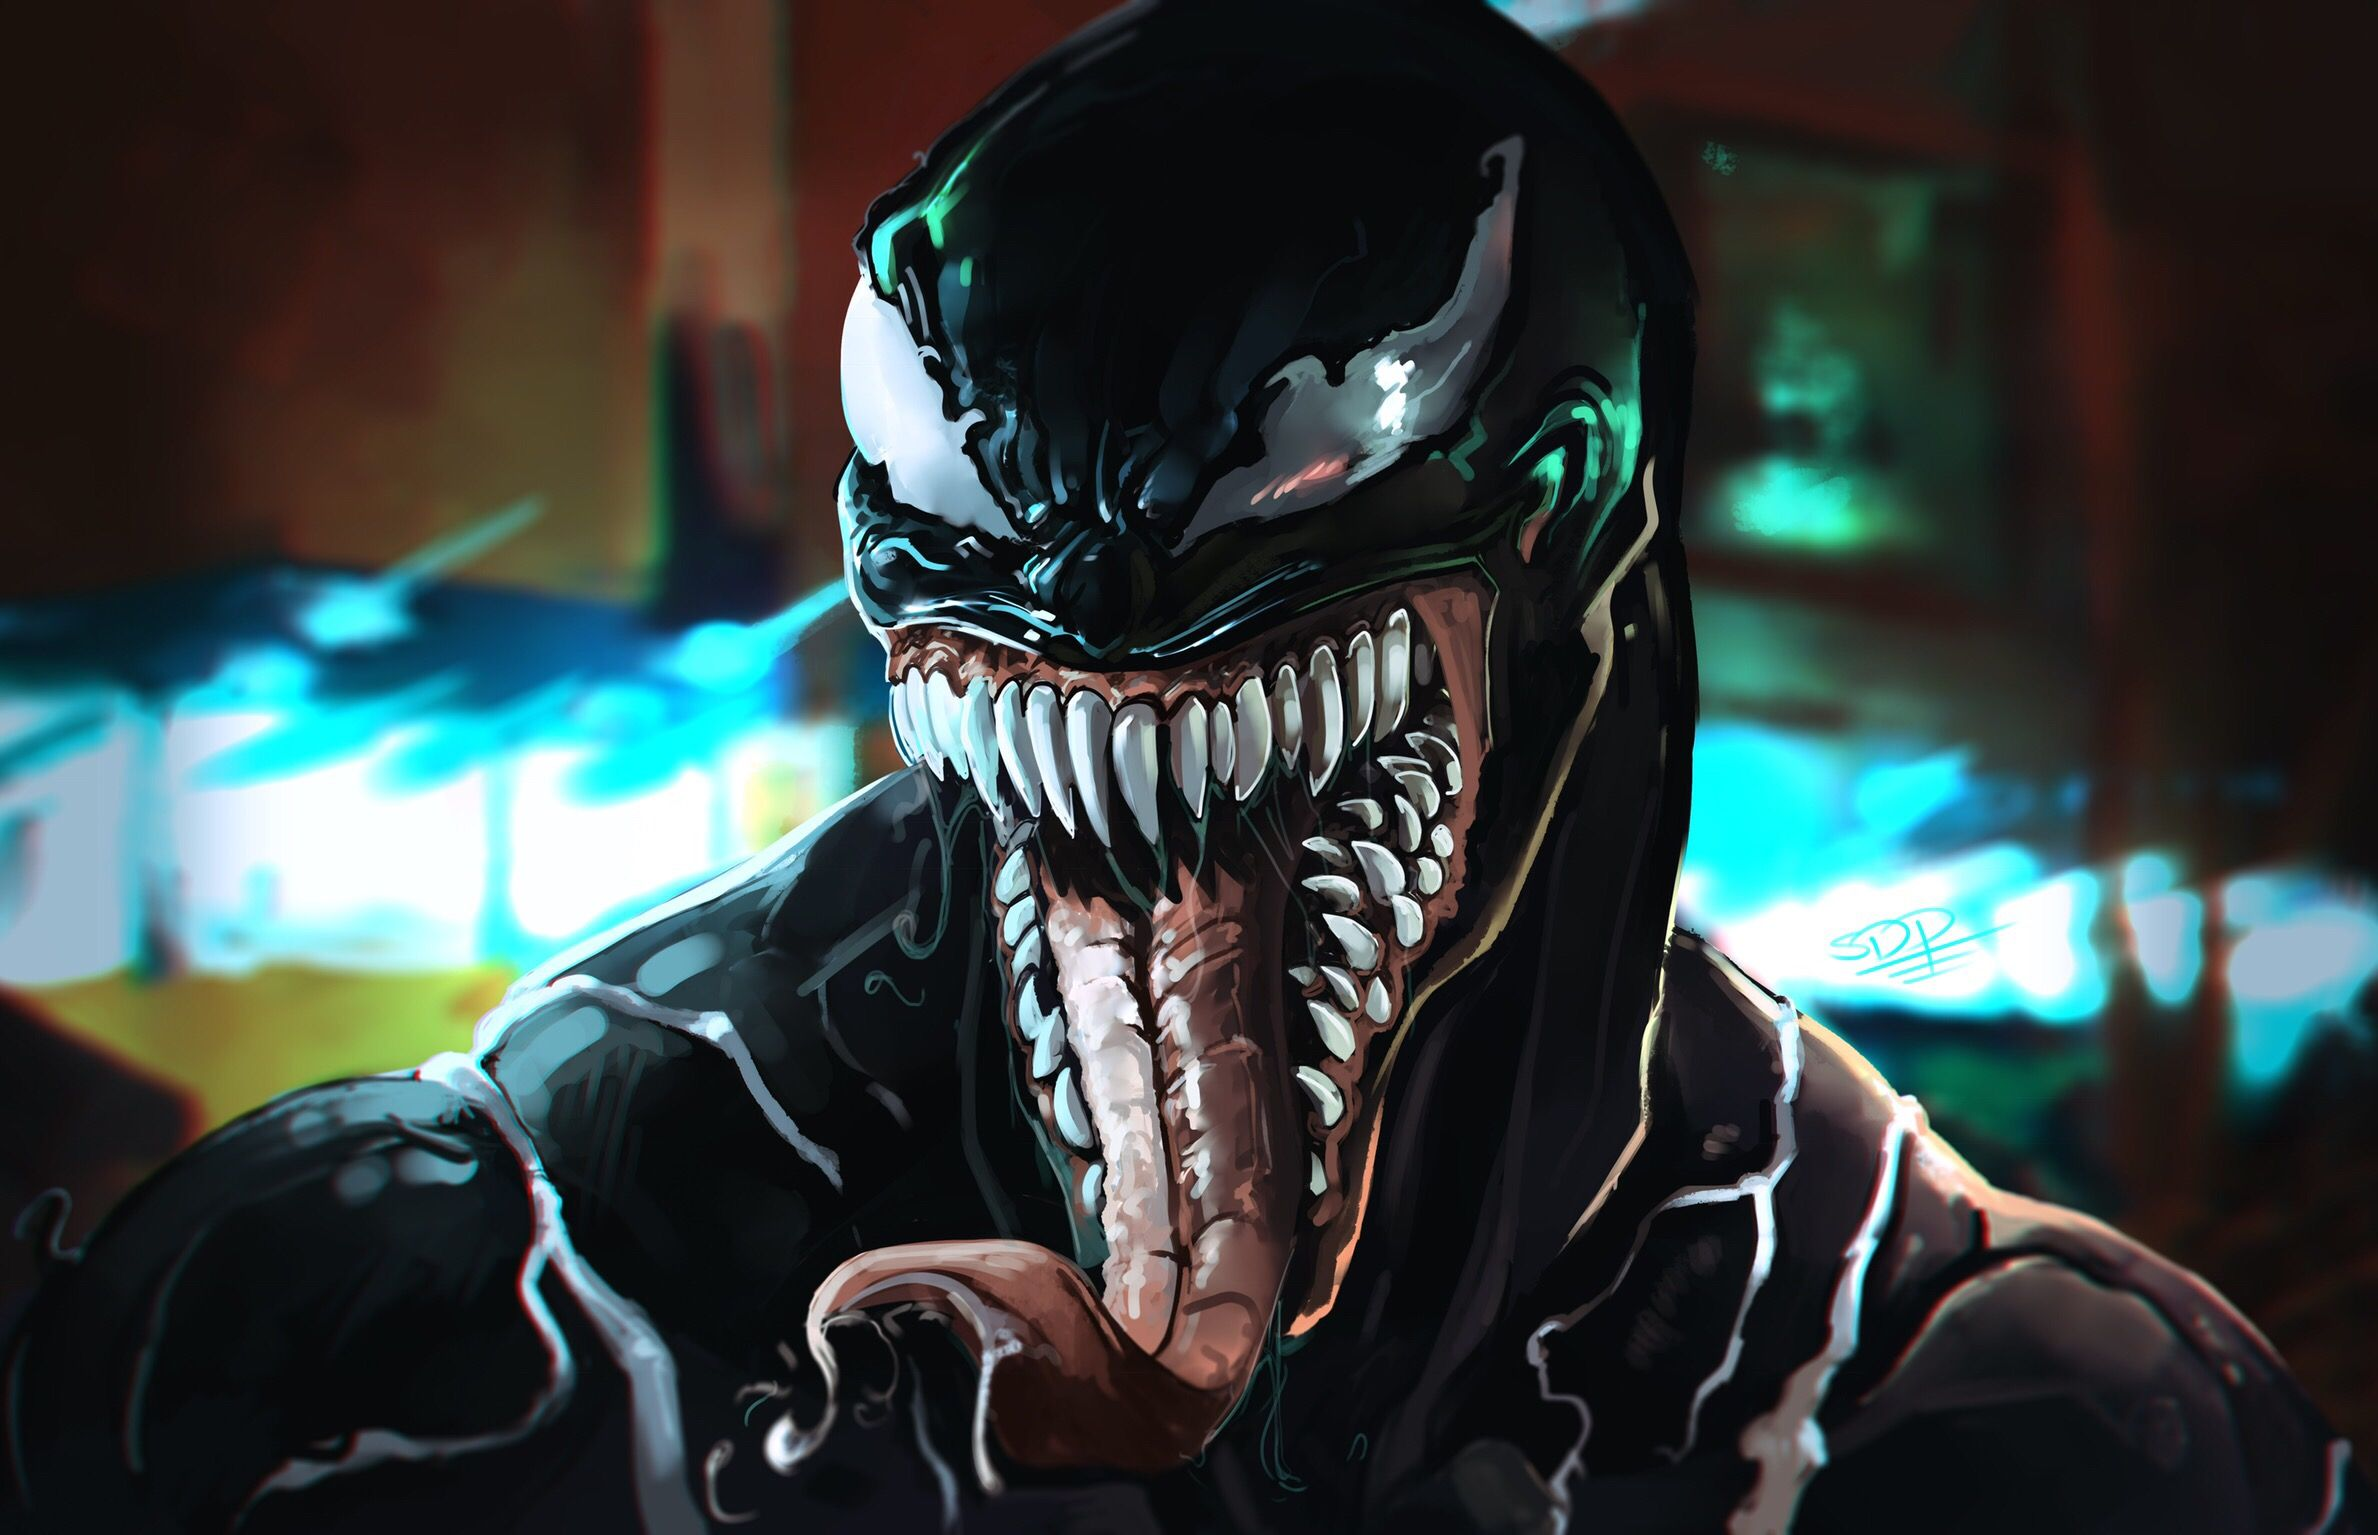 ultra hd 4k wallpaper download, venom 4k